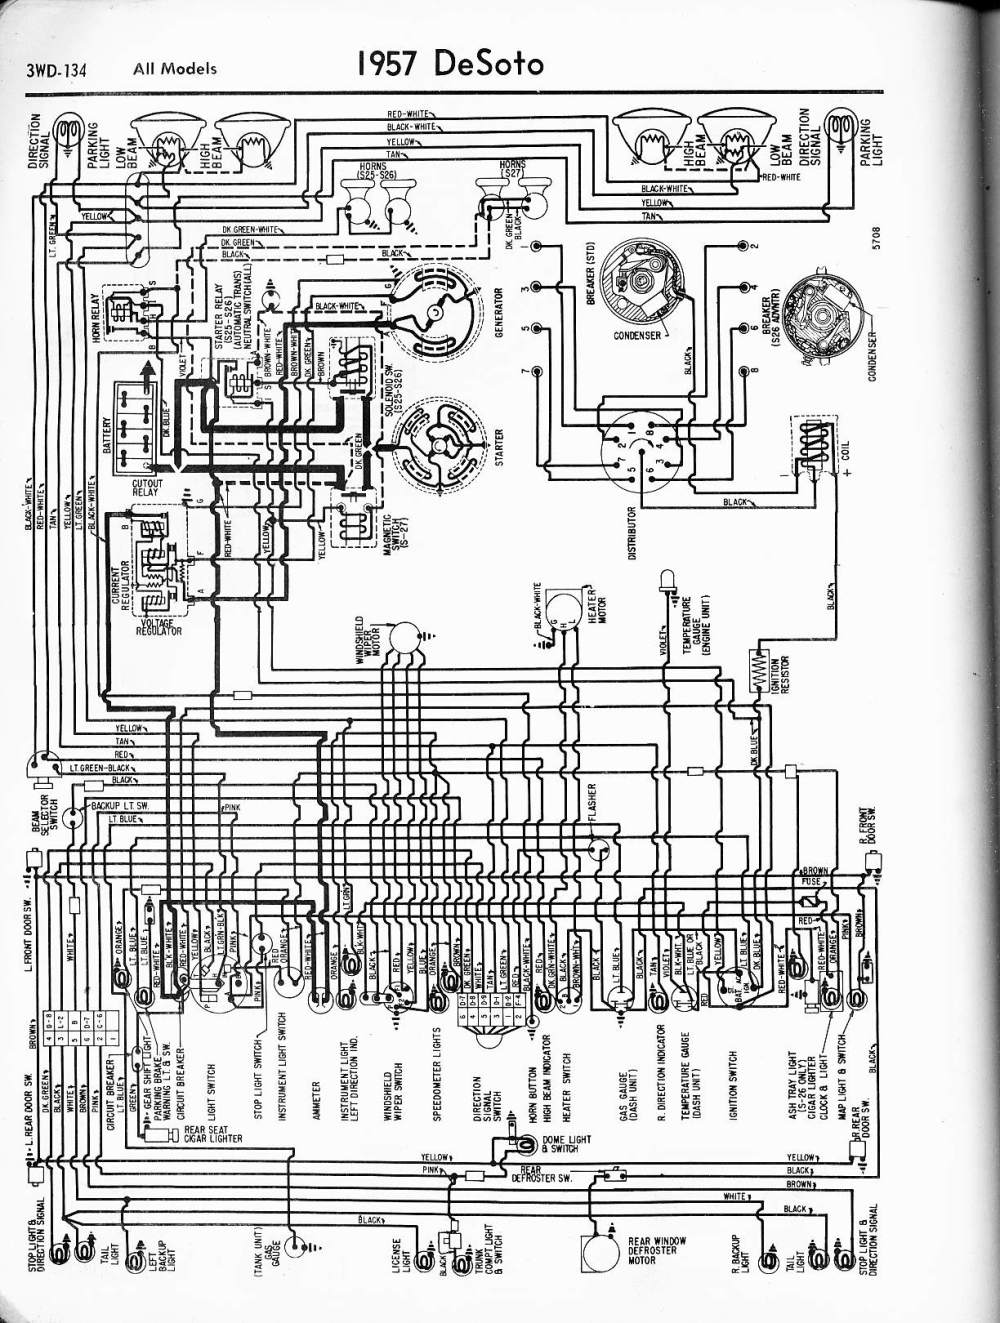 medium resolution of 1951 desoto wiring diagram electrical wiring diagrams rh 24 phd medical faculty hamburg de 1998 lincoln